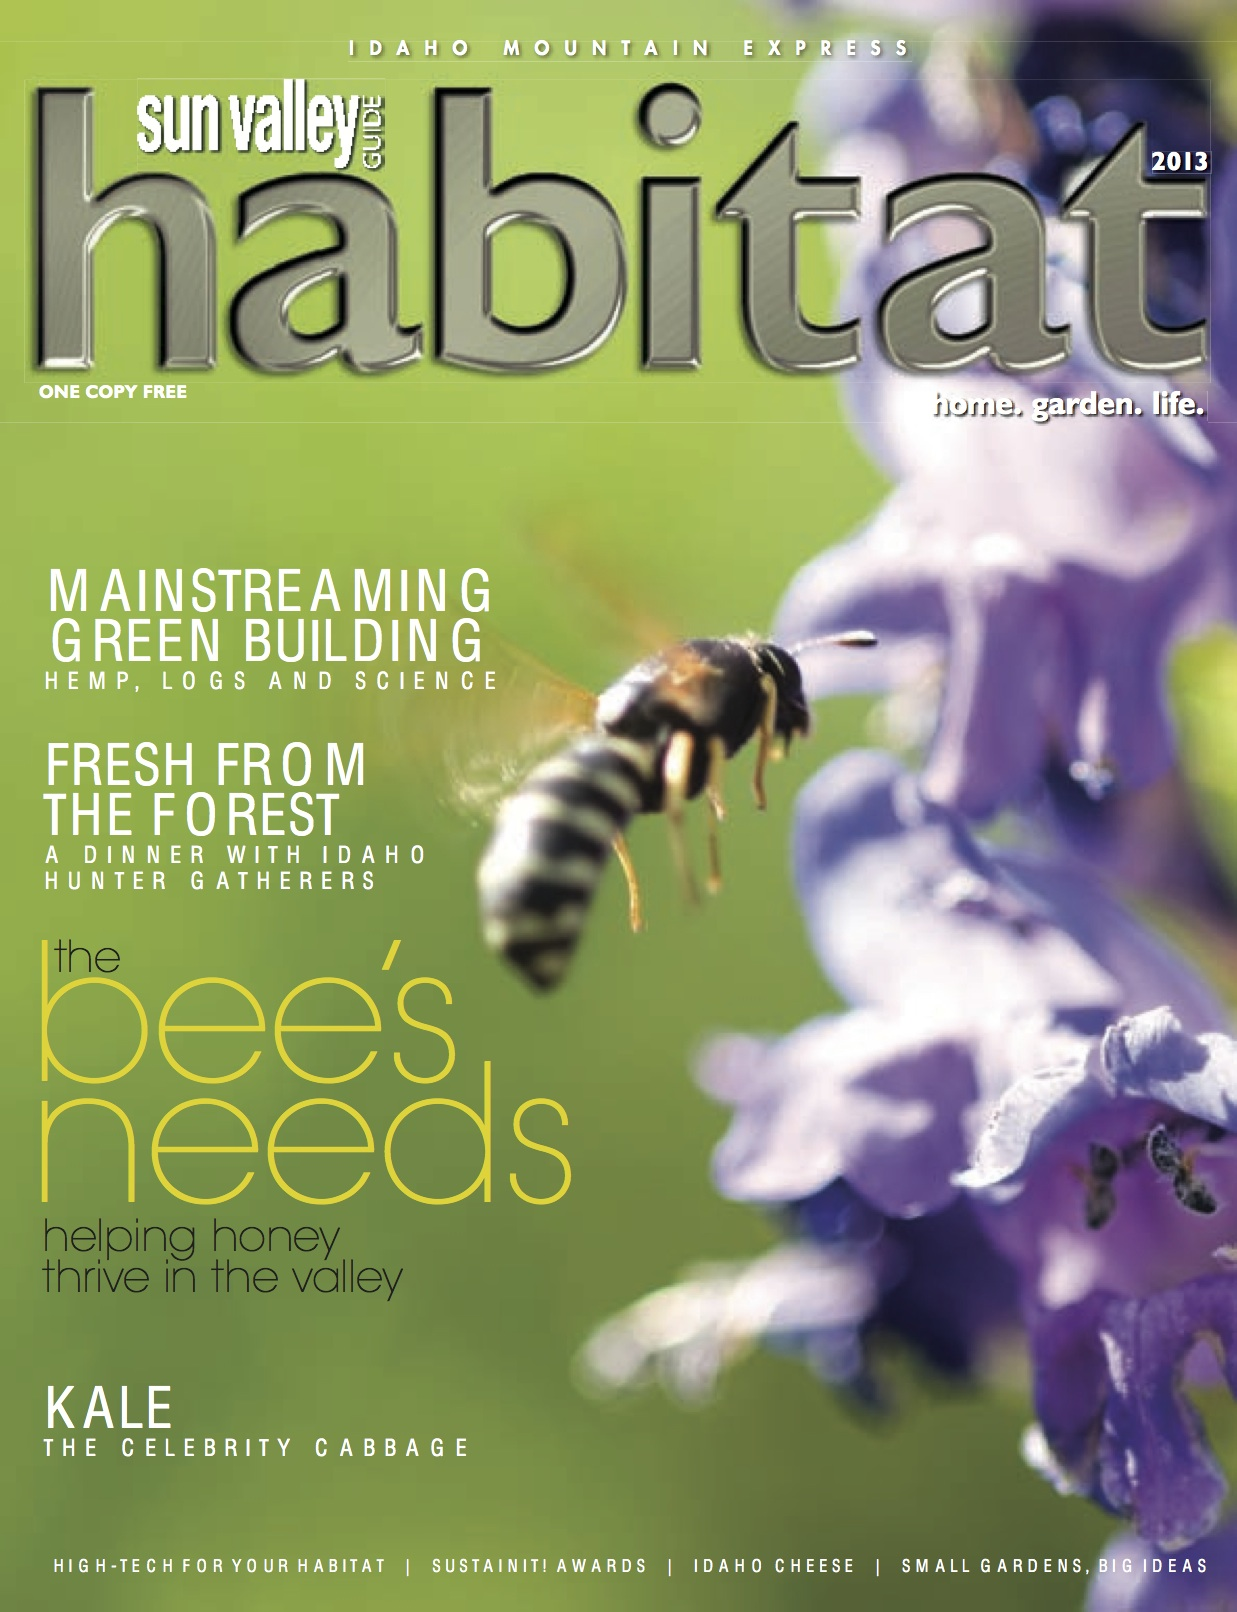 Paulette Phlipot's  stunning image of a honey bee (yes, IT IS a honey bee... not a hornet), graces the cover of my last issue, published today.